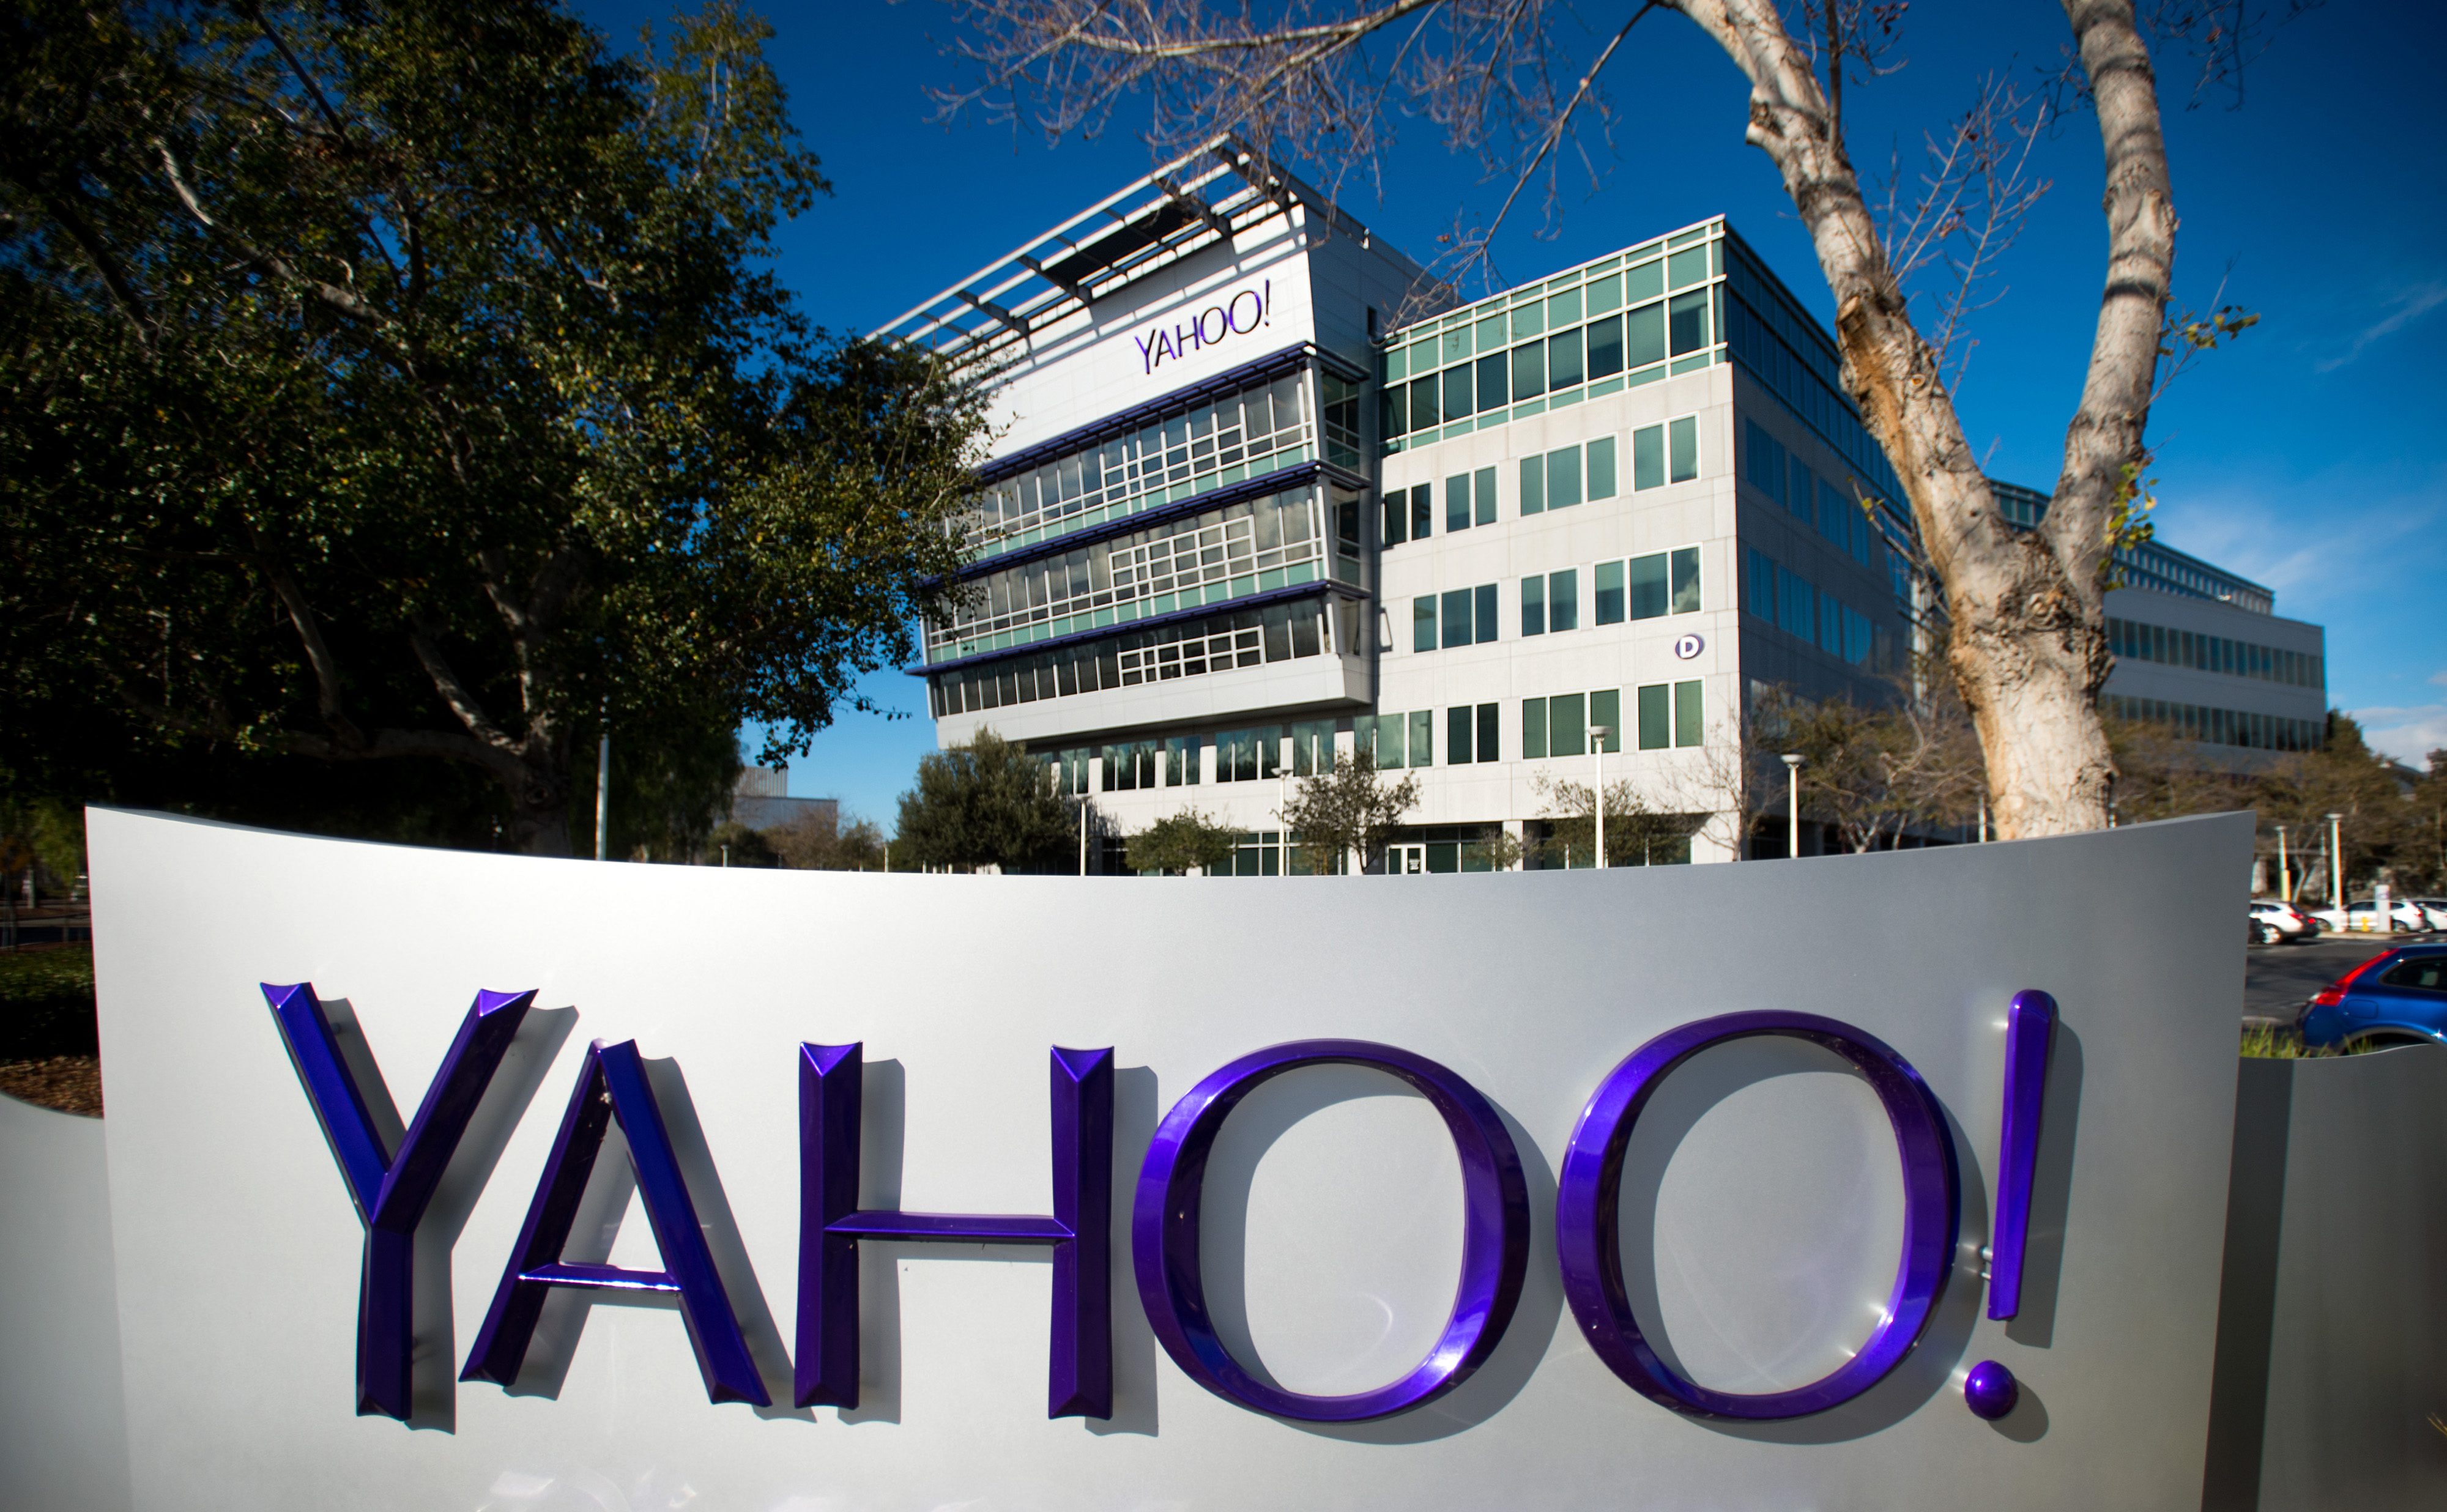 Yahoo's signage is displayed at the company's headquarters in California.